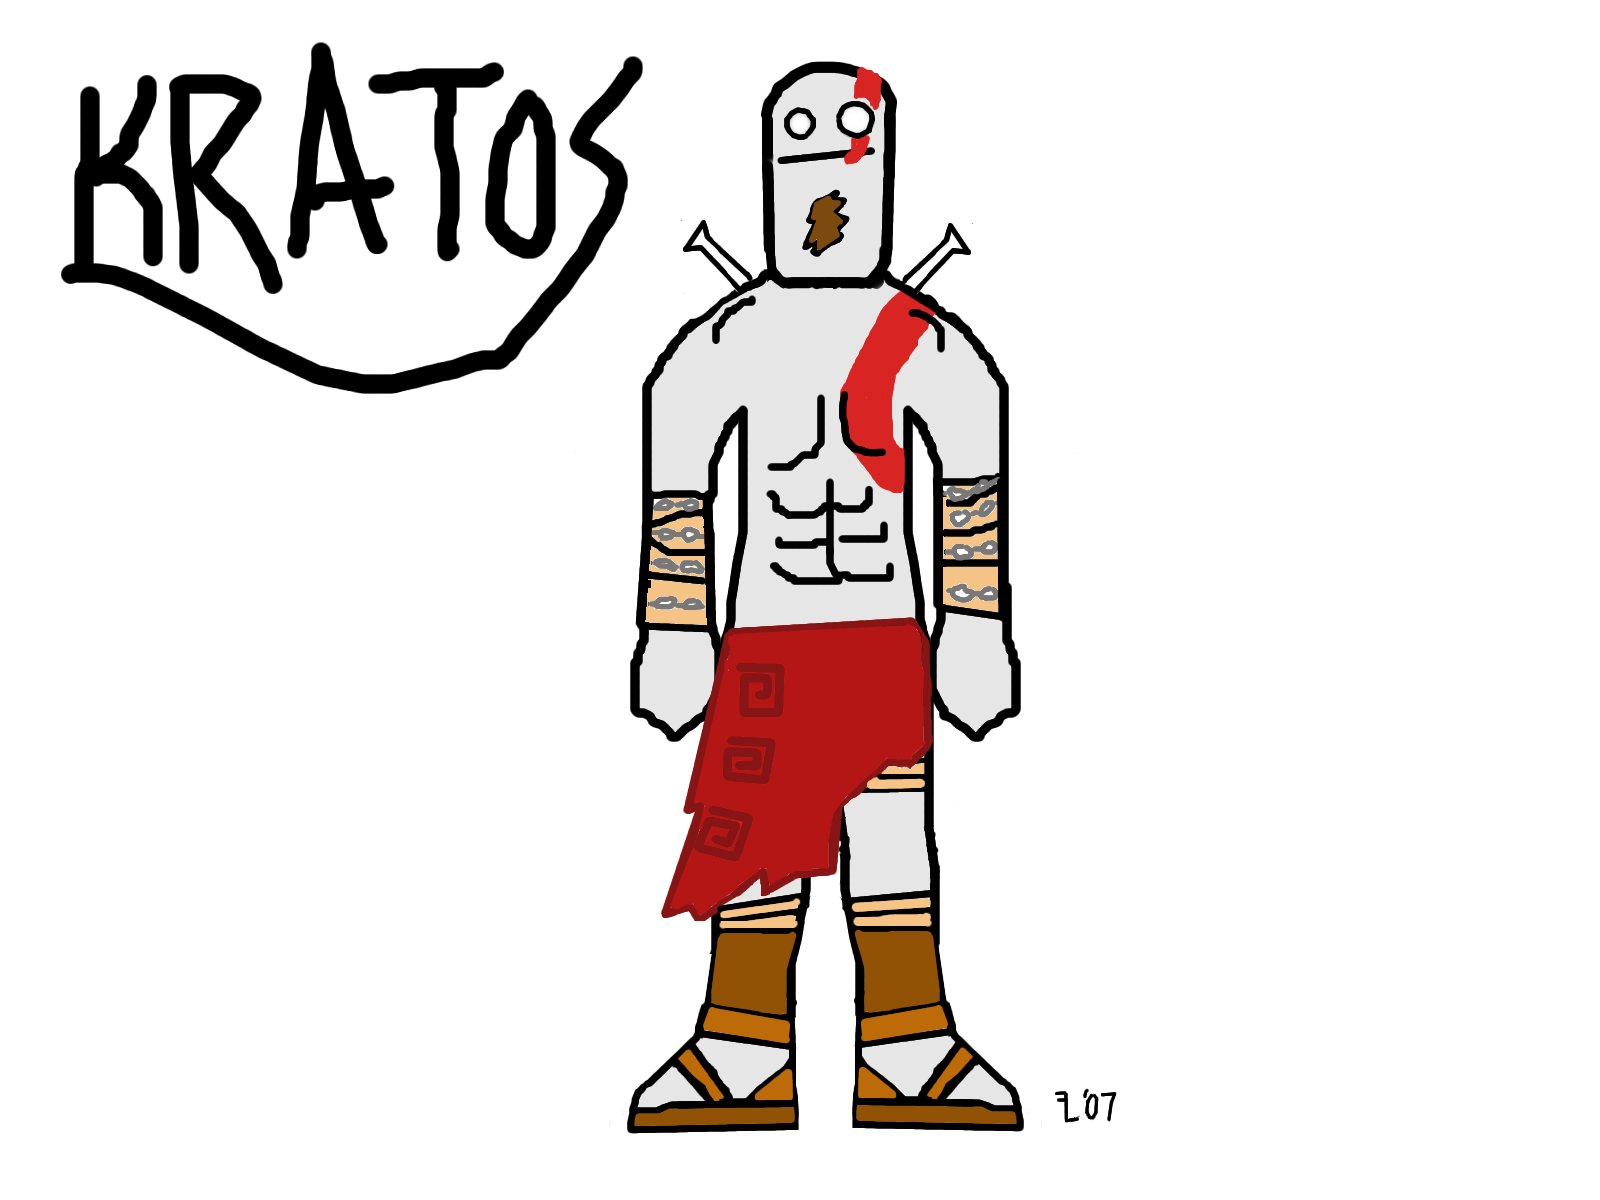 Kratos is cool by FlatterLR